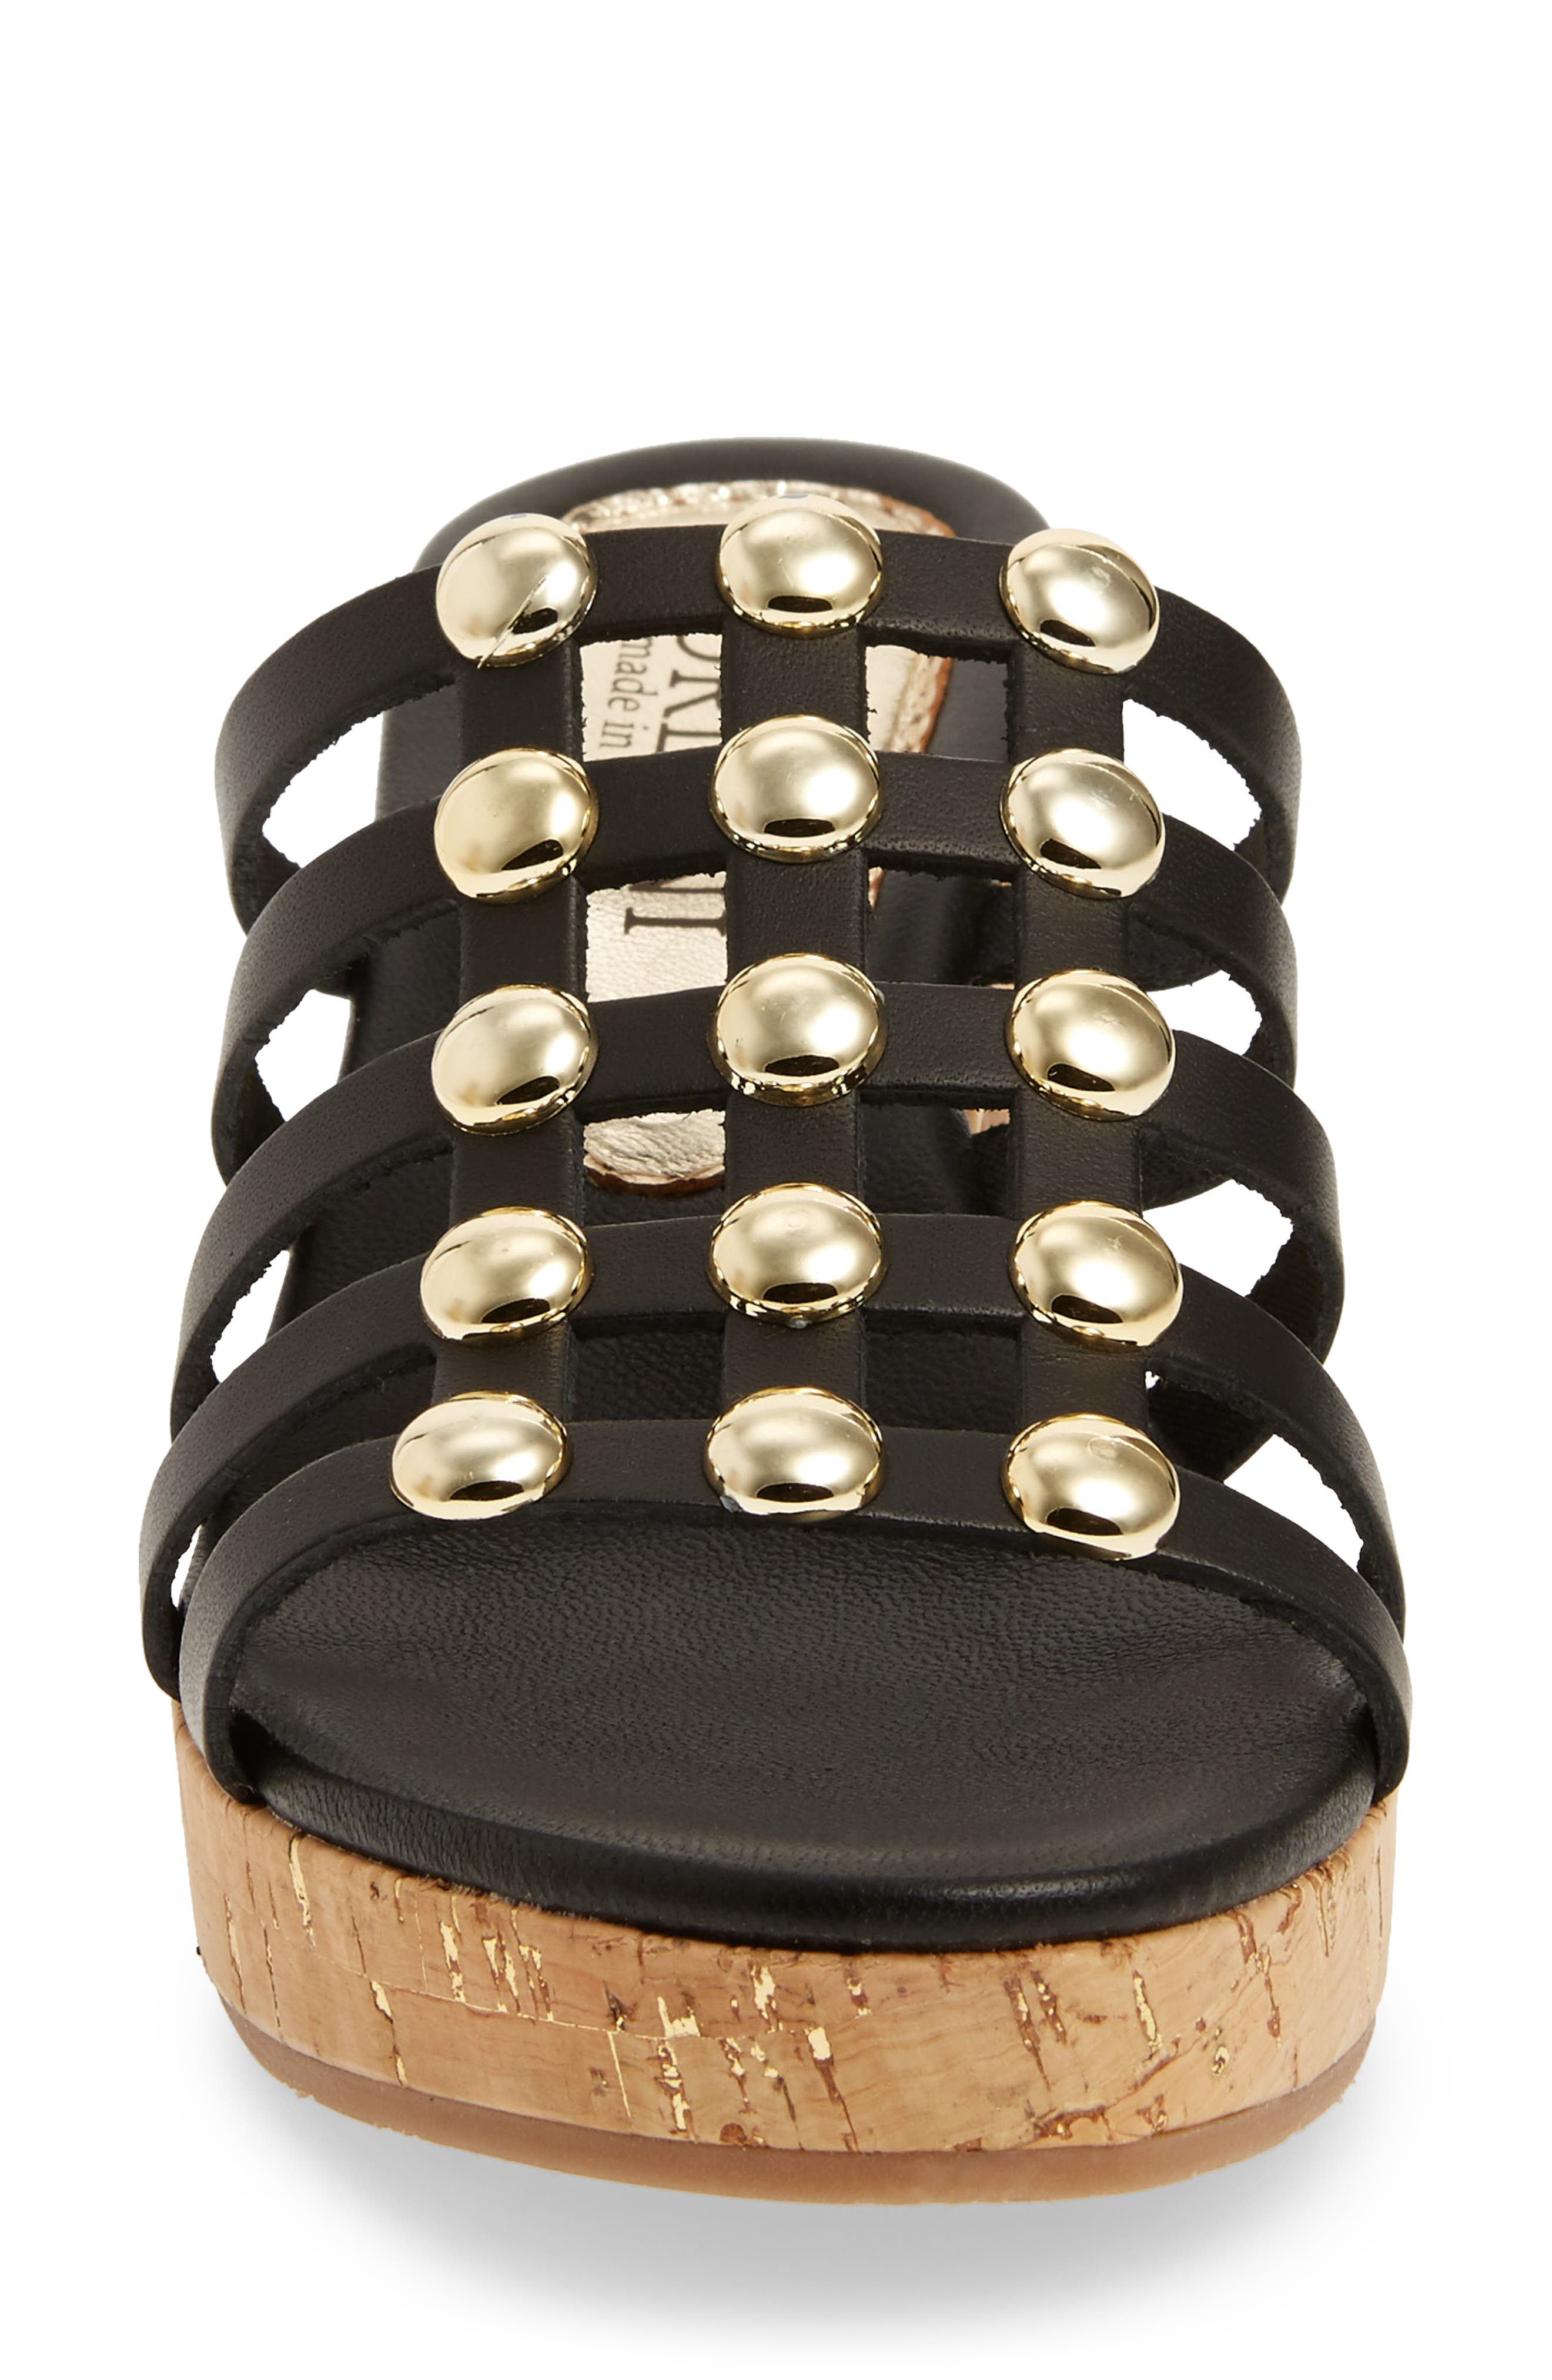 Keane Studded Slide Sandal,                             Alternate thumbnail 4, color,                             BLACK LEATHER